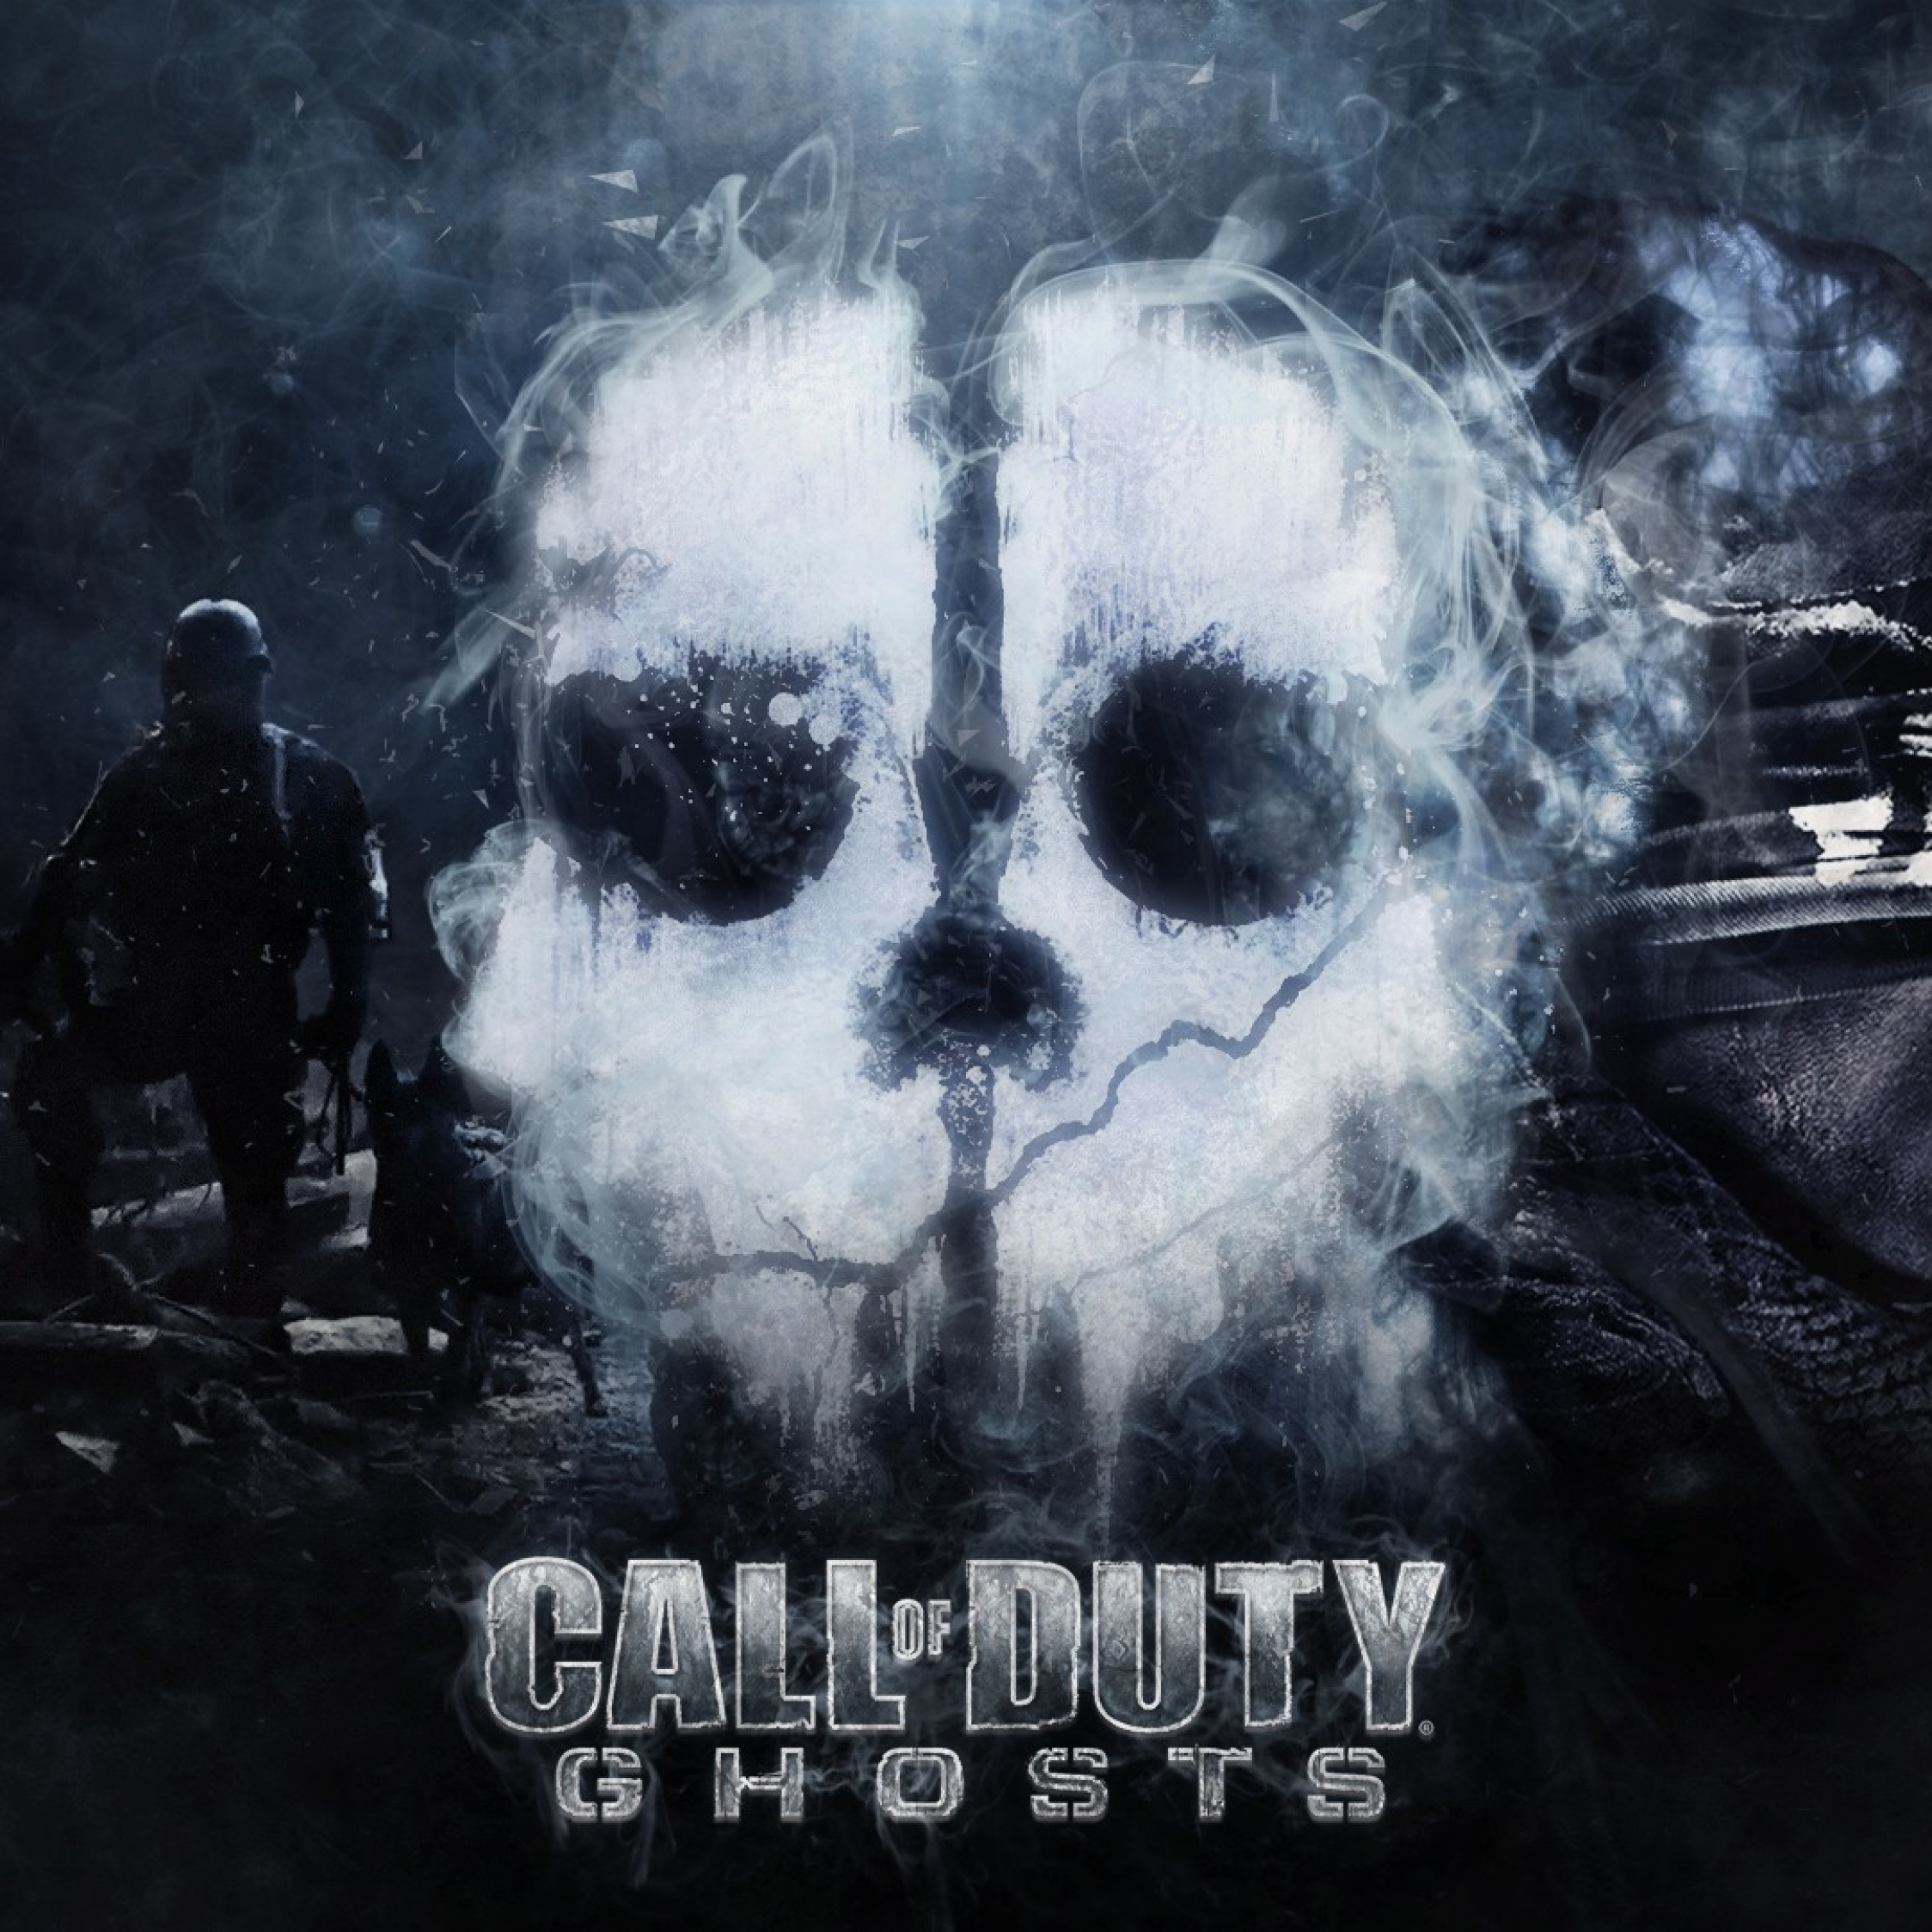 call of duty ghosts cod ghost infinity ward resolution=2248x2248